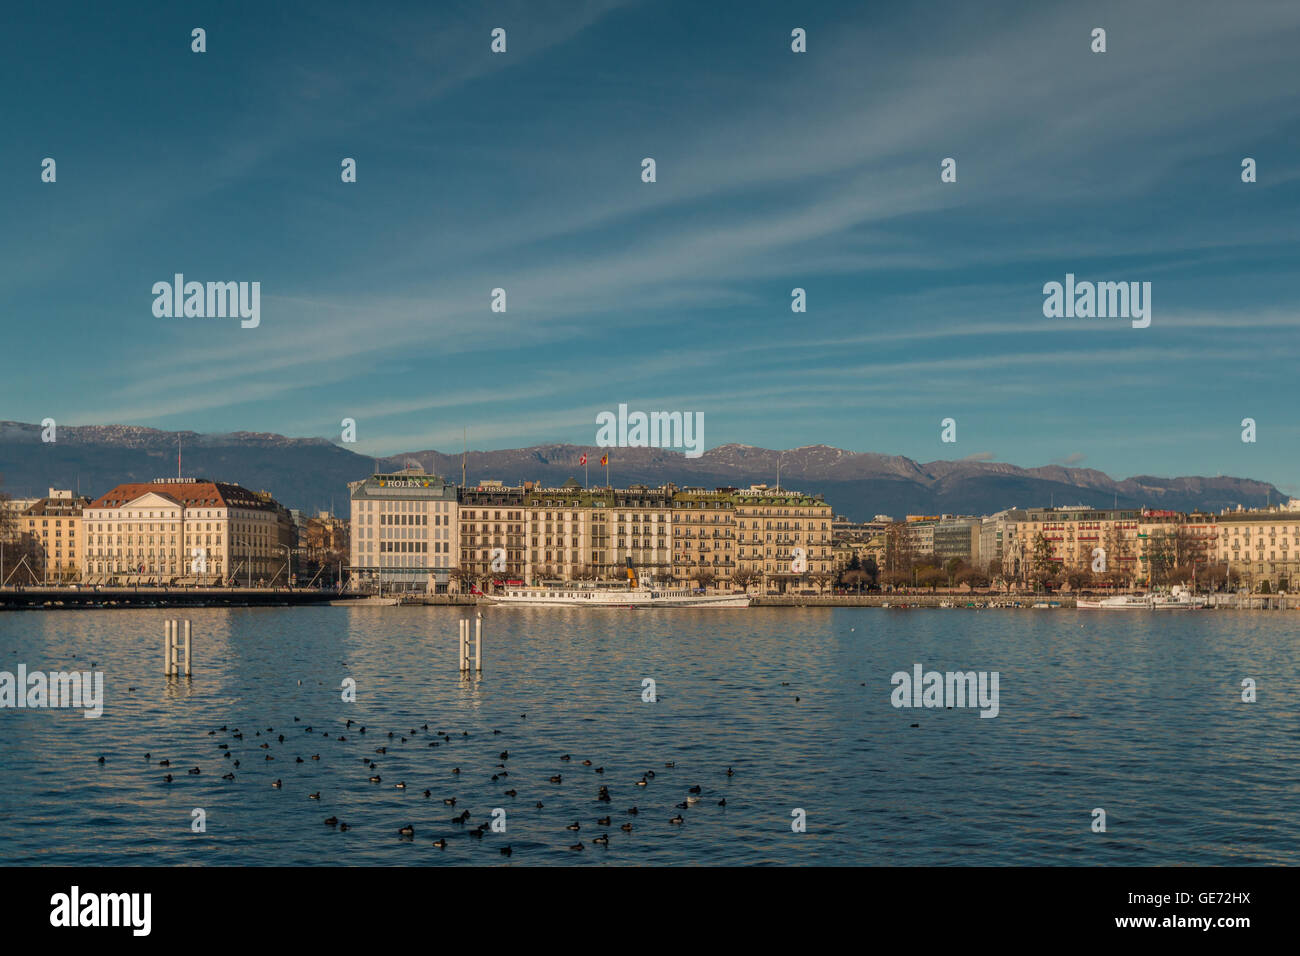 Geneva lake and city - Stock Image